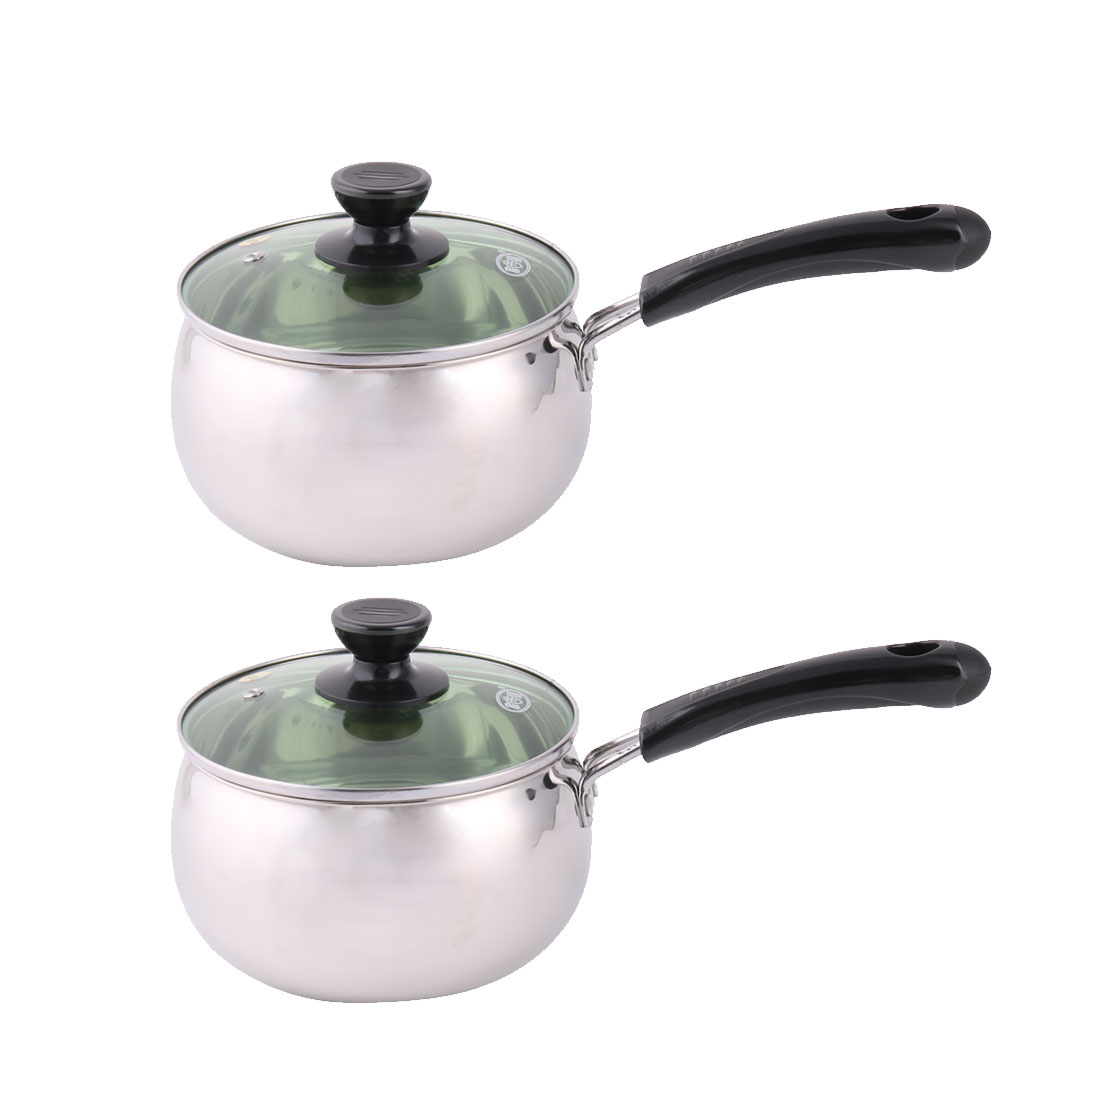 Household Kitchen Plastic Handle Milk Porrige Soup Noodles Cooking Pot Pan 2 Pcs